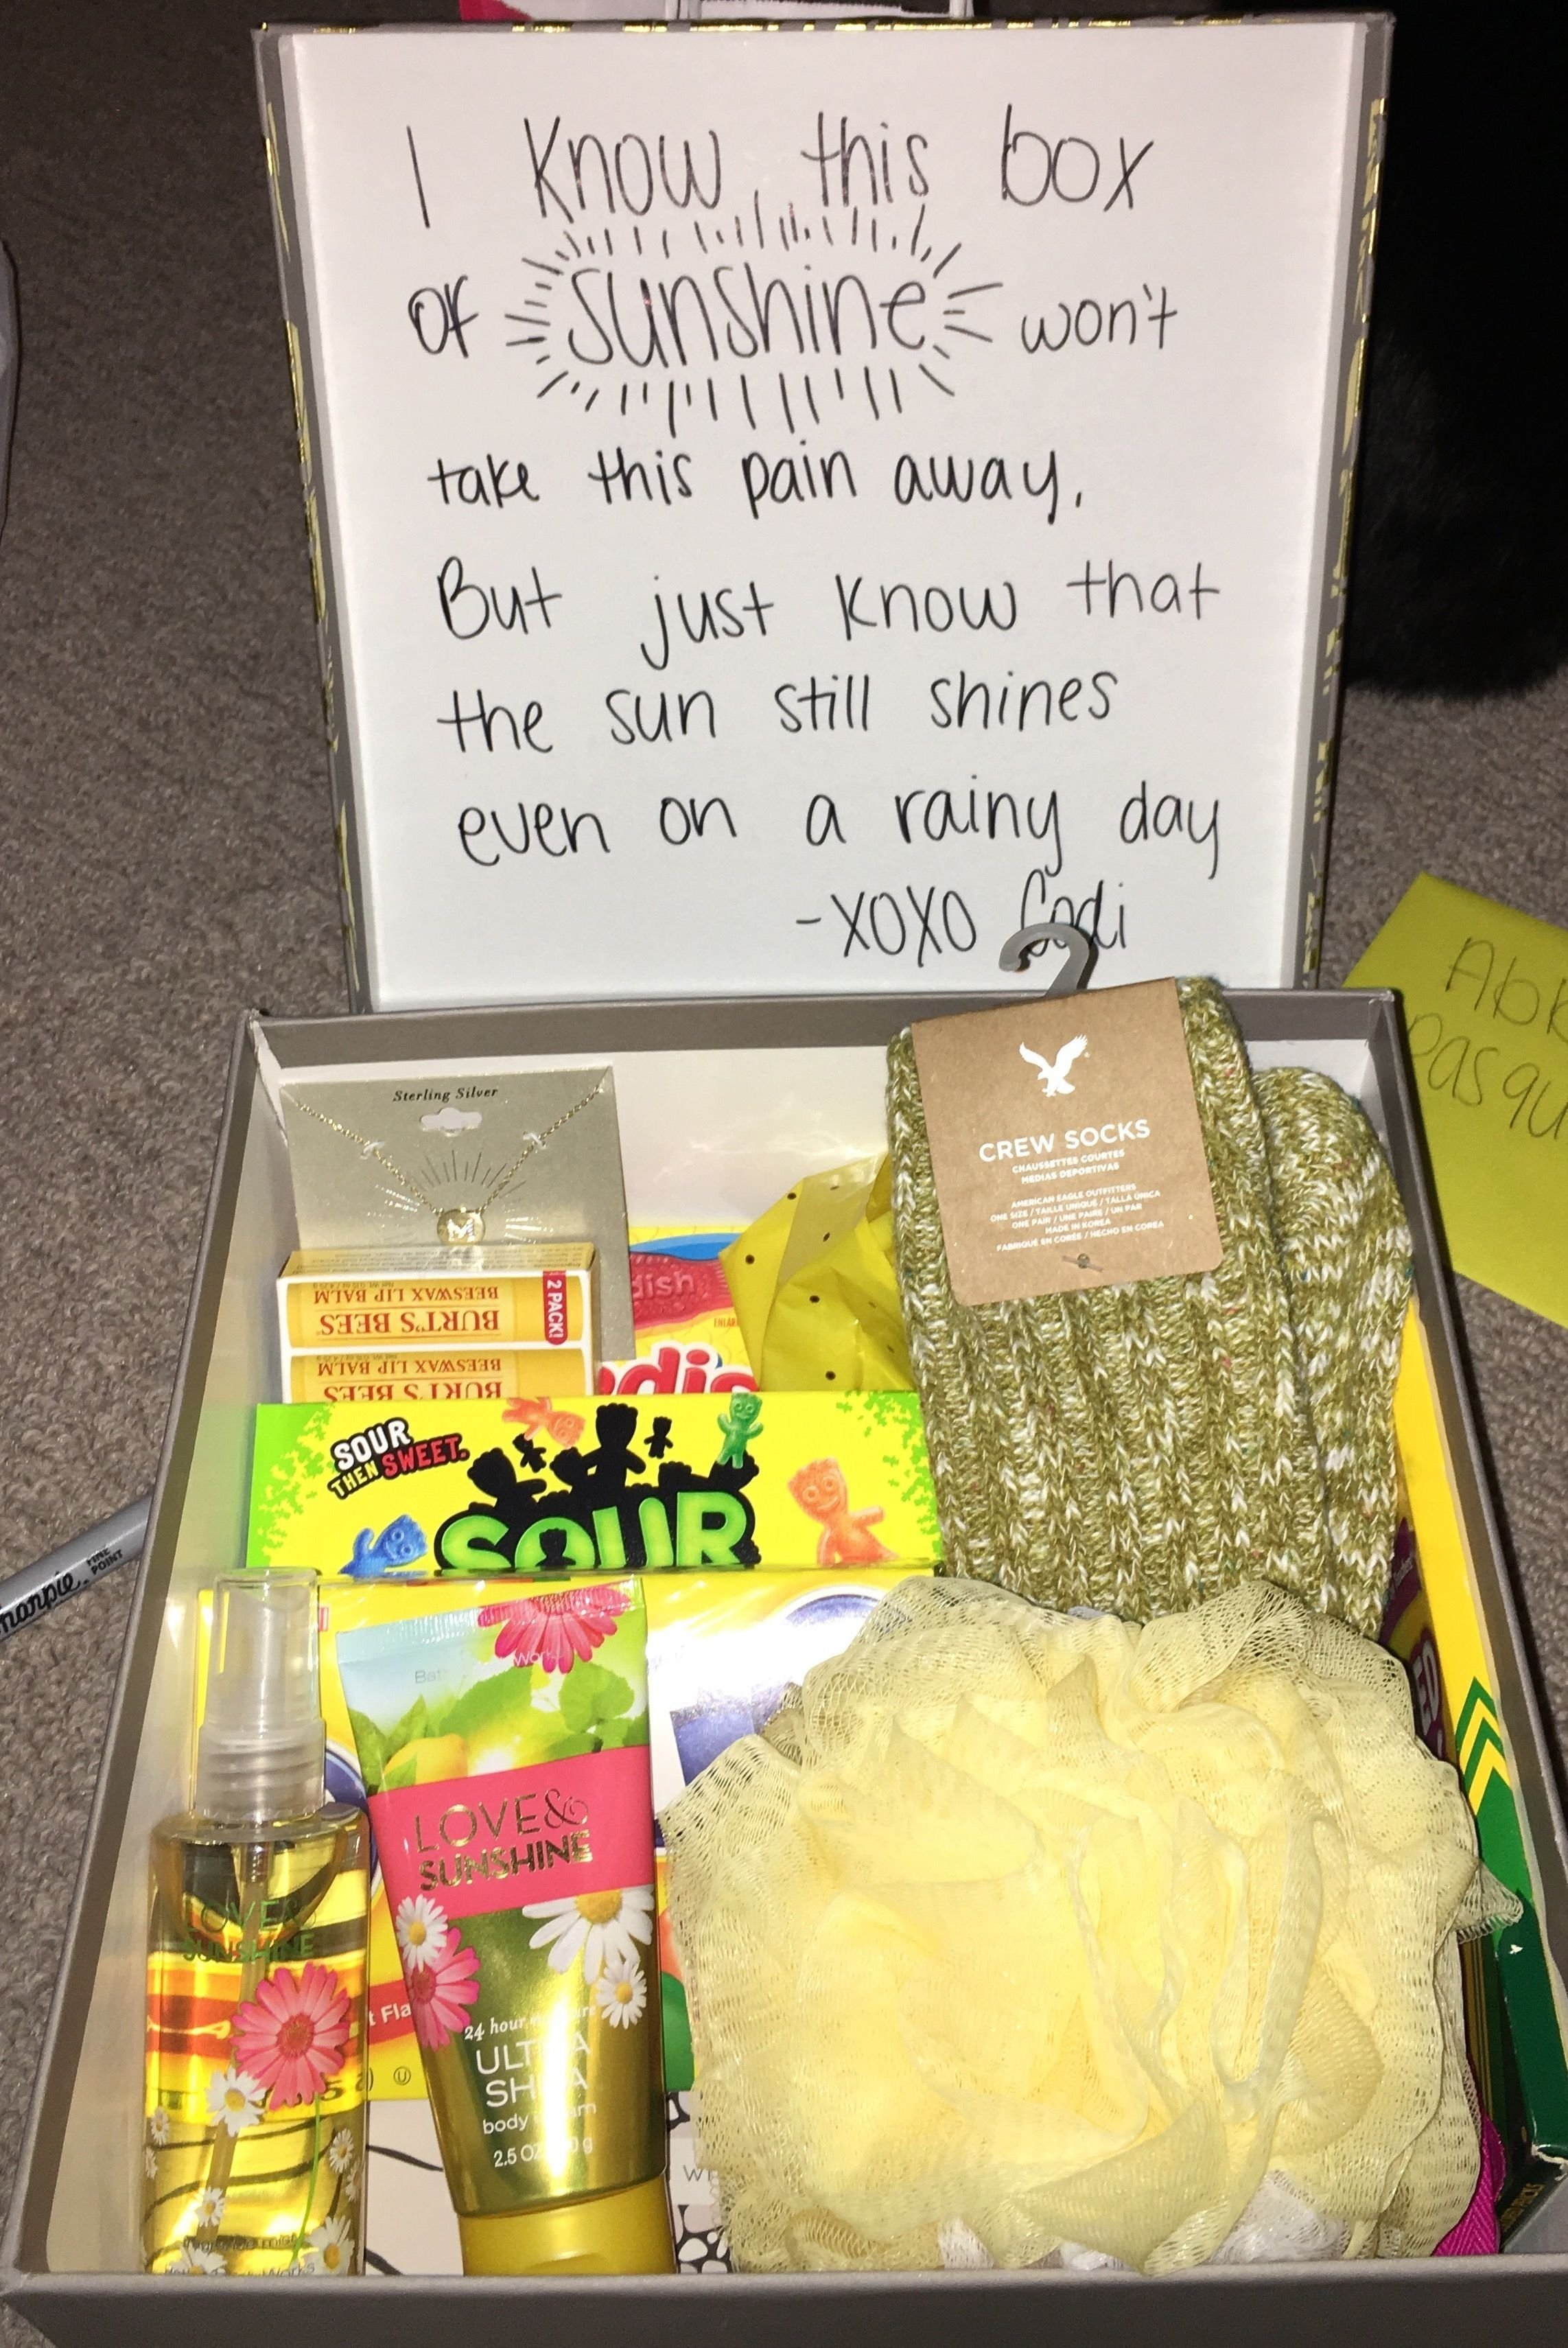 10 Amazing Birthday Ideas For A Friend care package for grieving friend good idea pinterest gift 15 2020